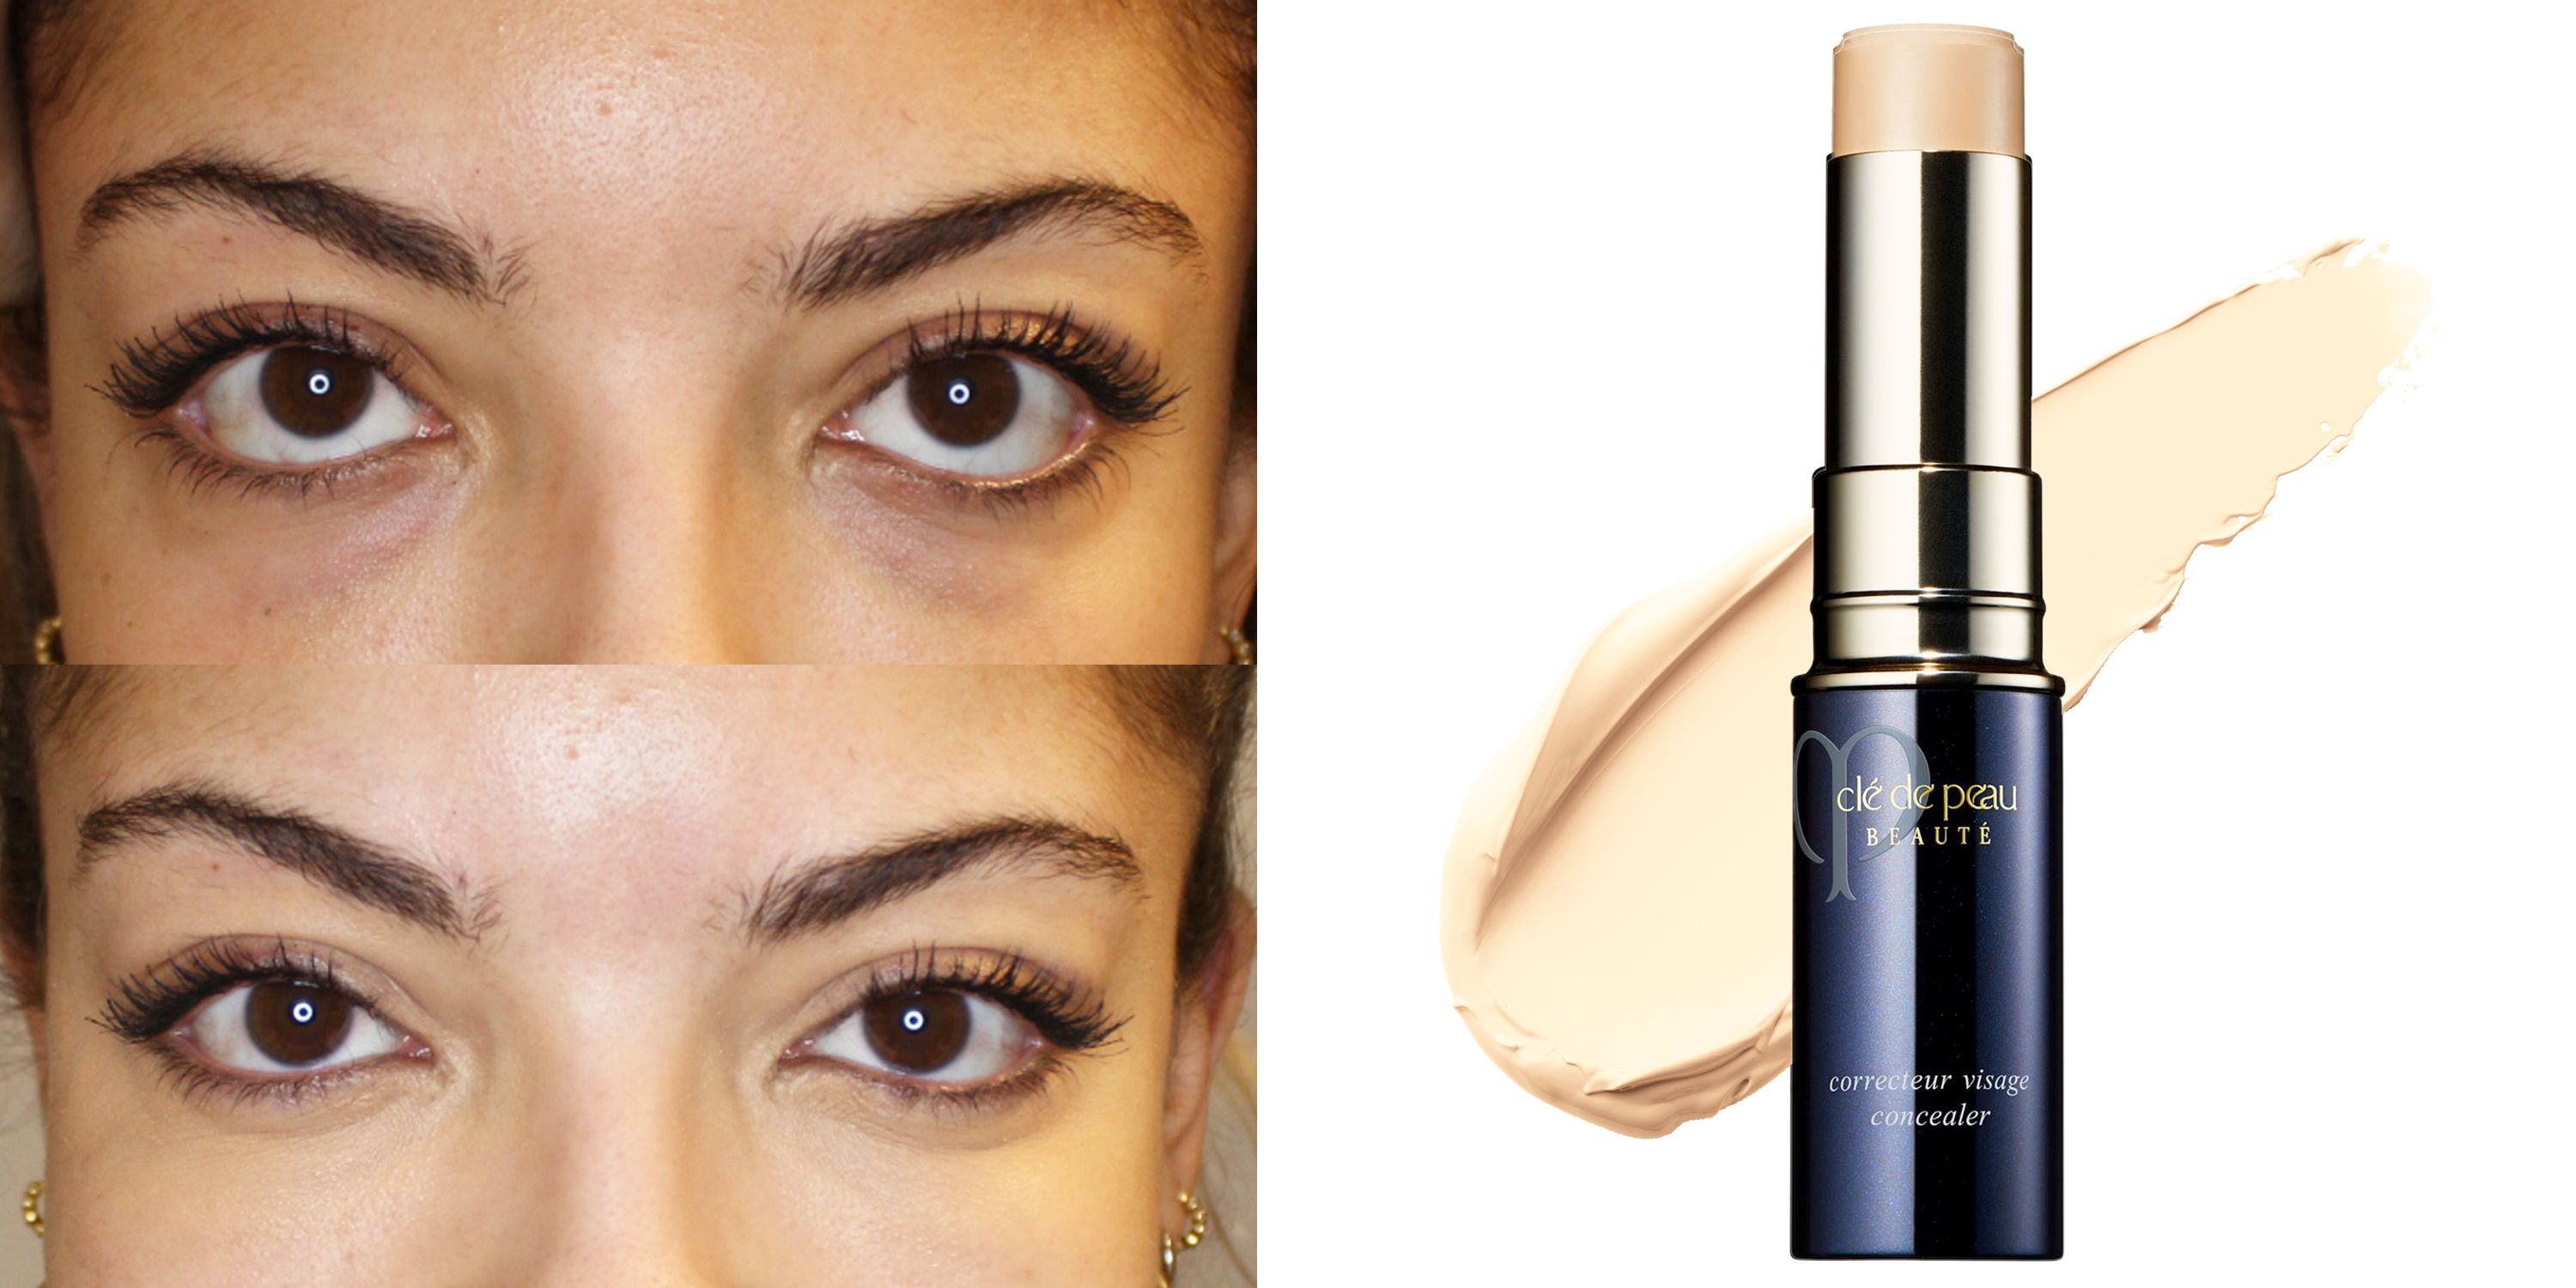 There's a reason beauty editors, MUAs and models swear by this cult concealer